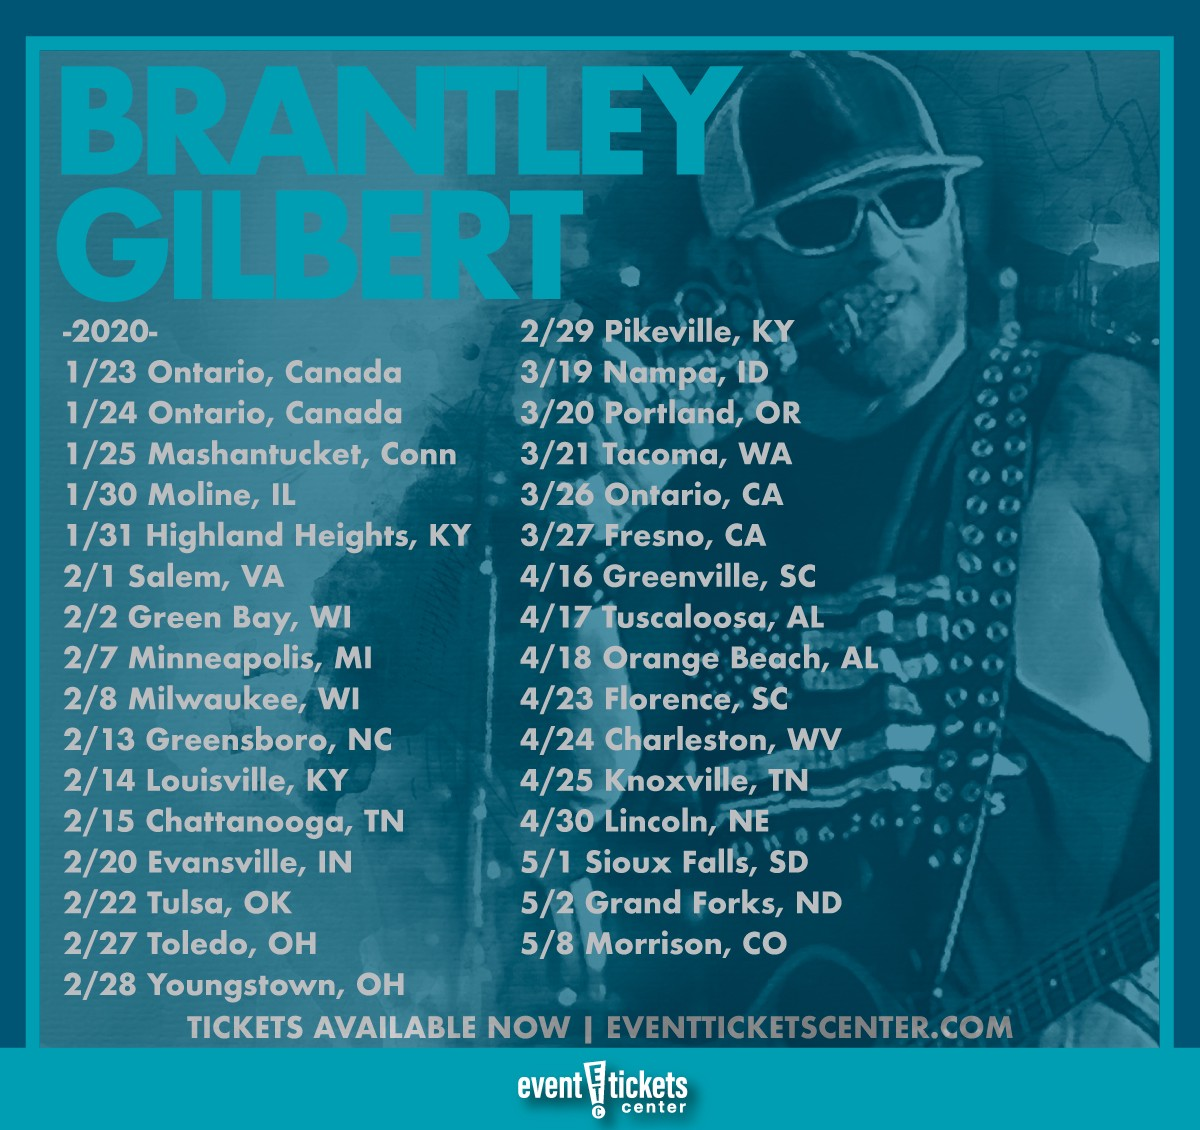 Brantley Gilbert Tour 2020.Brantley Gilbert Reveals 2020 Tour Event Tickets Center